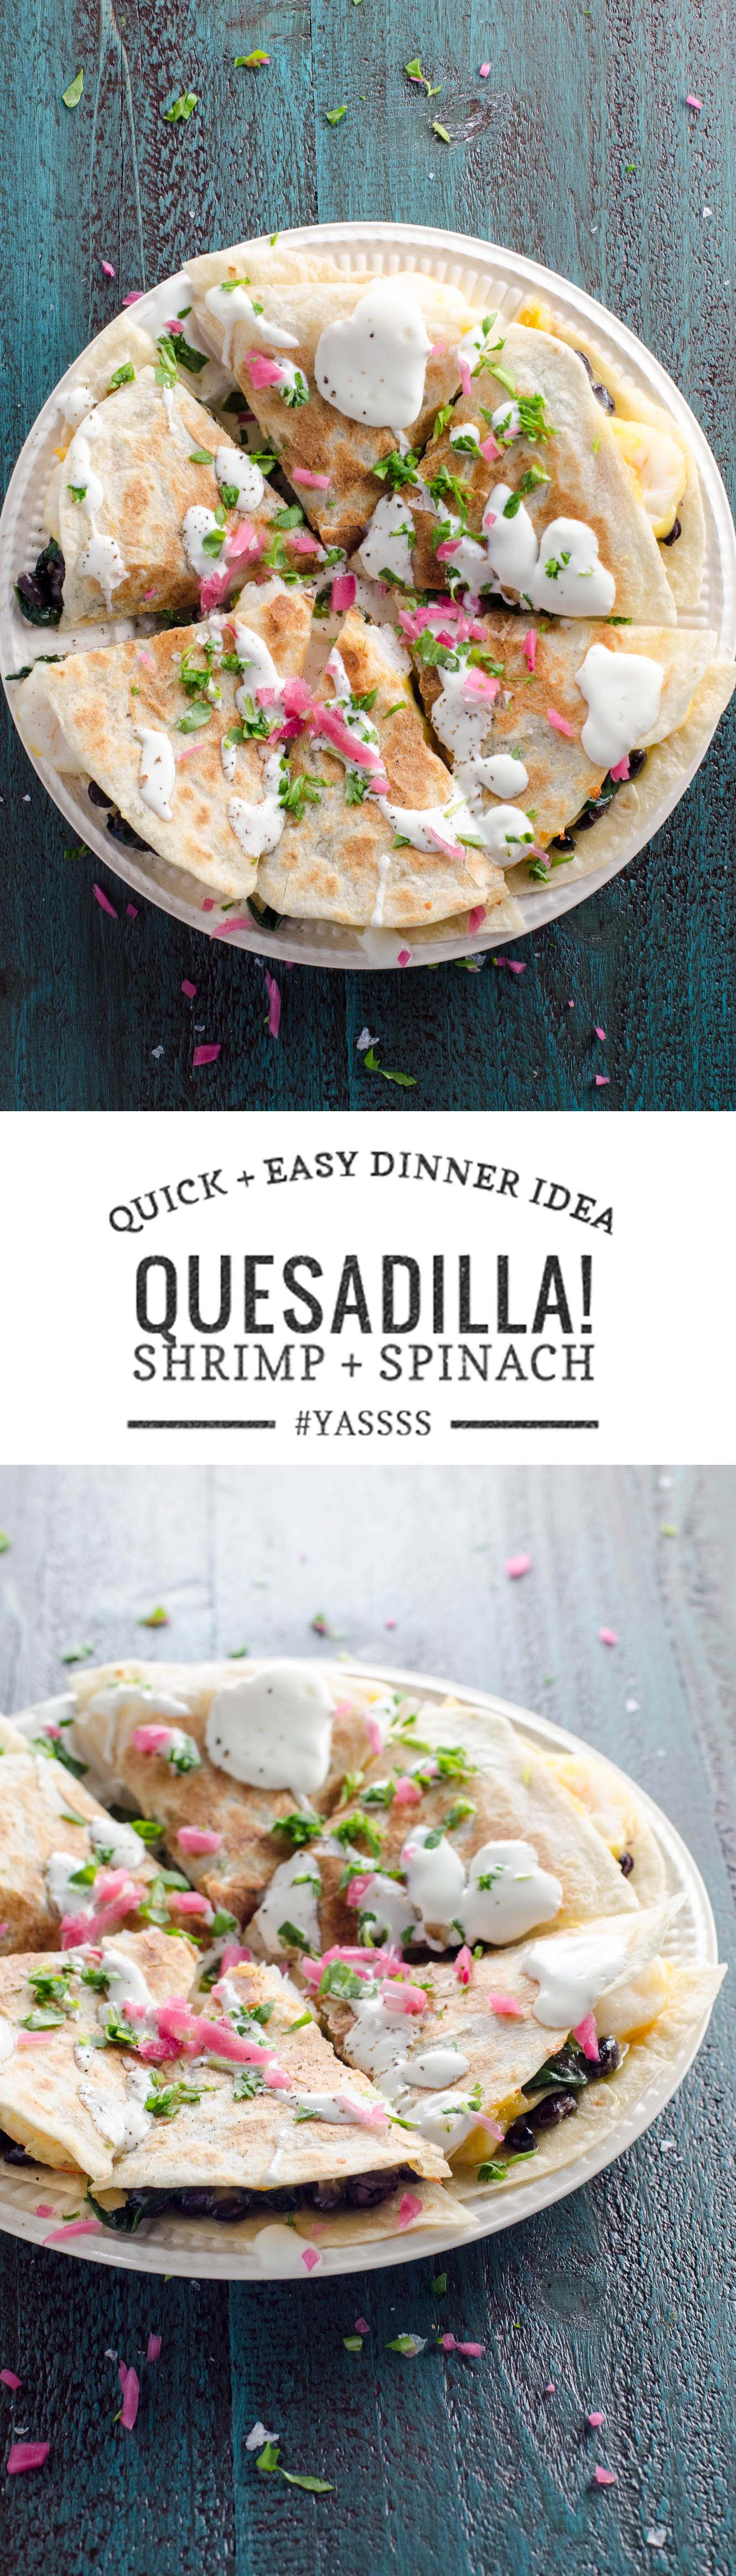 A quick and easy dinner idea: shrimp quesadilla with spinach and black beans. Works great at a party, too.